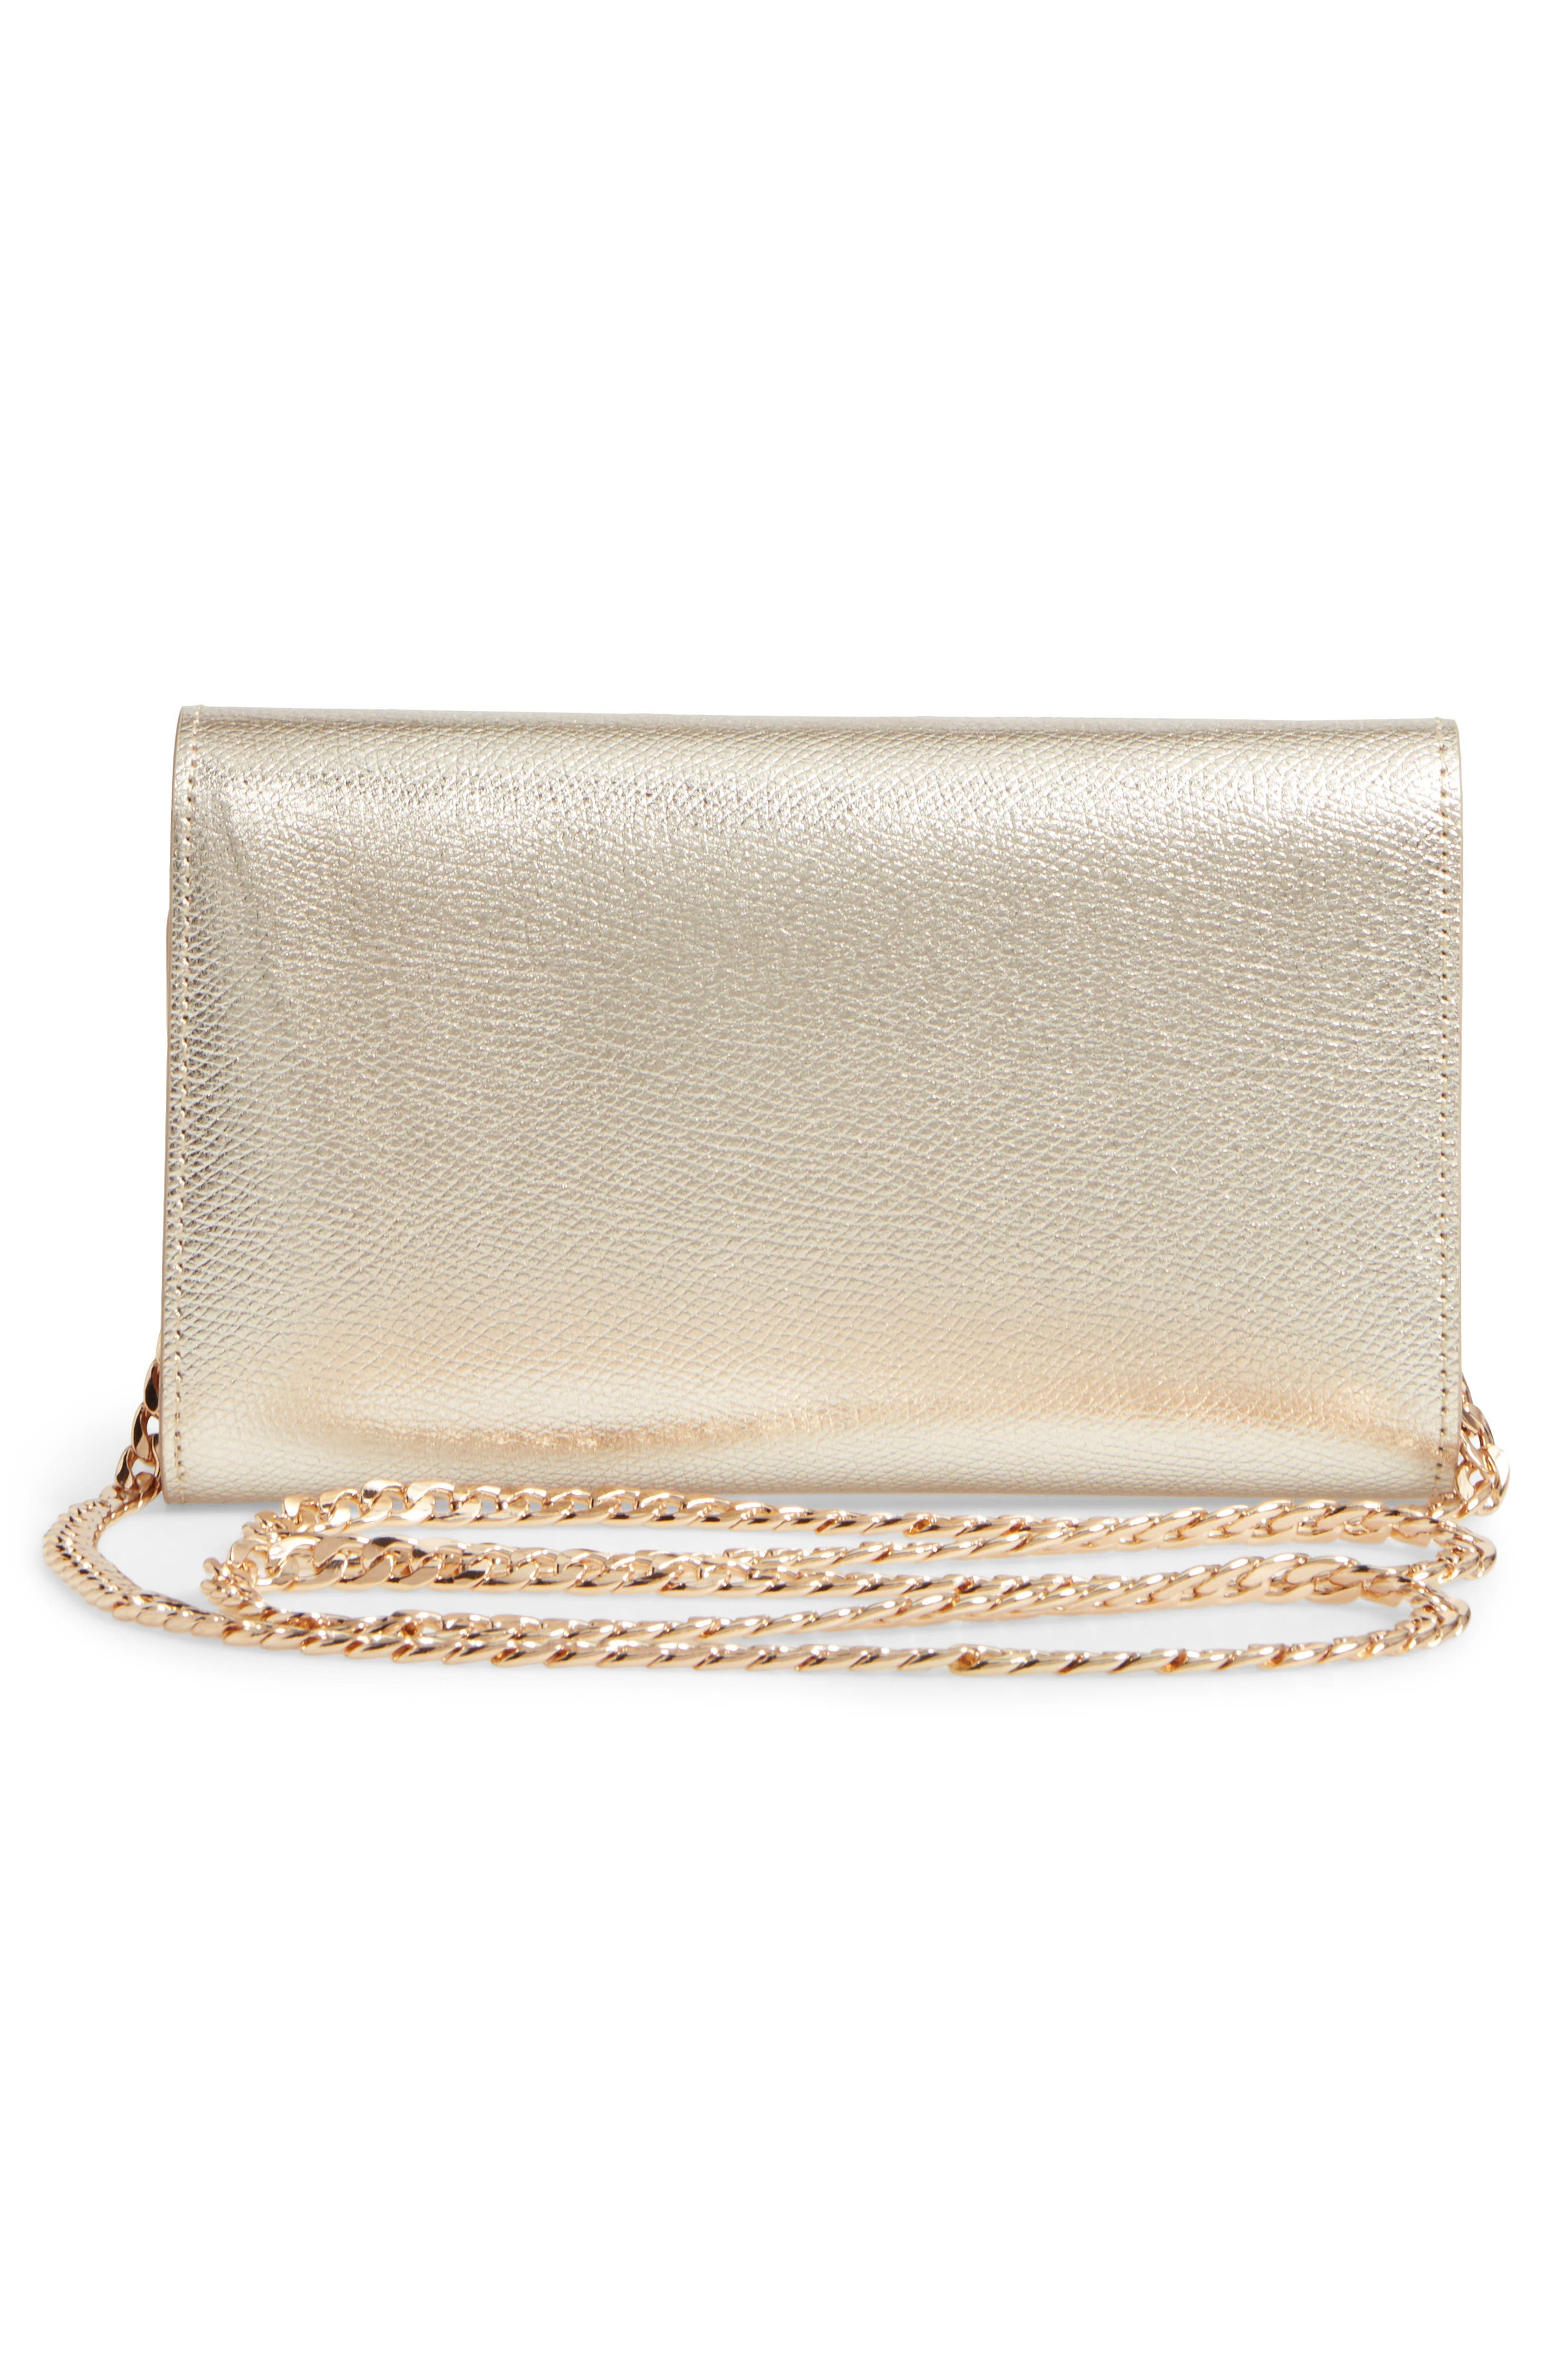 Wallet on a Chain,                             Alternate thumbnail 3, color,                             040